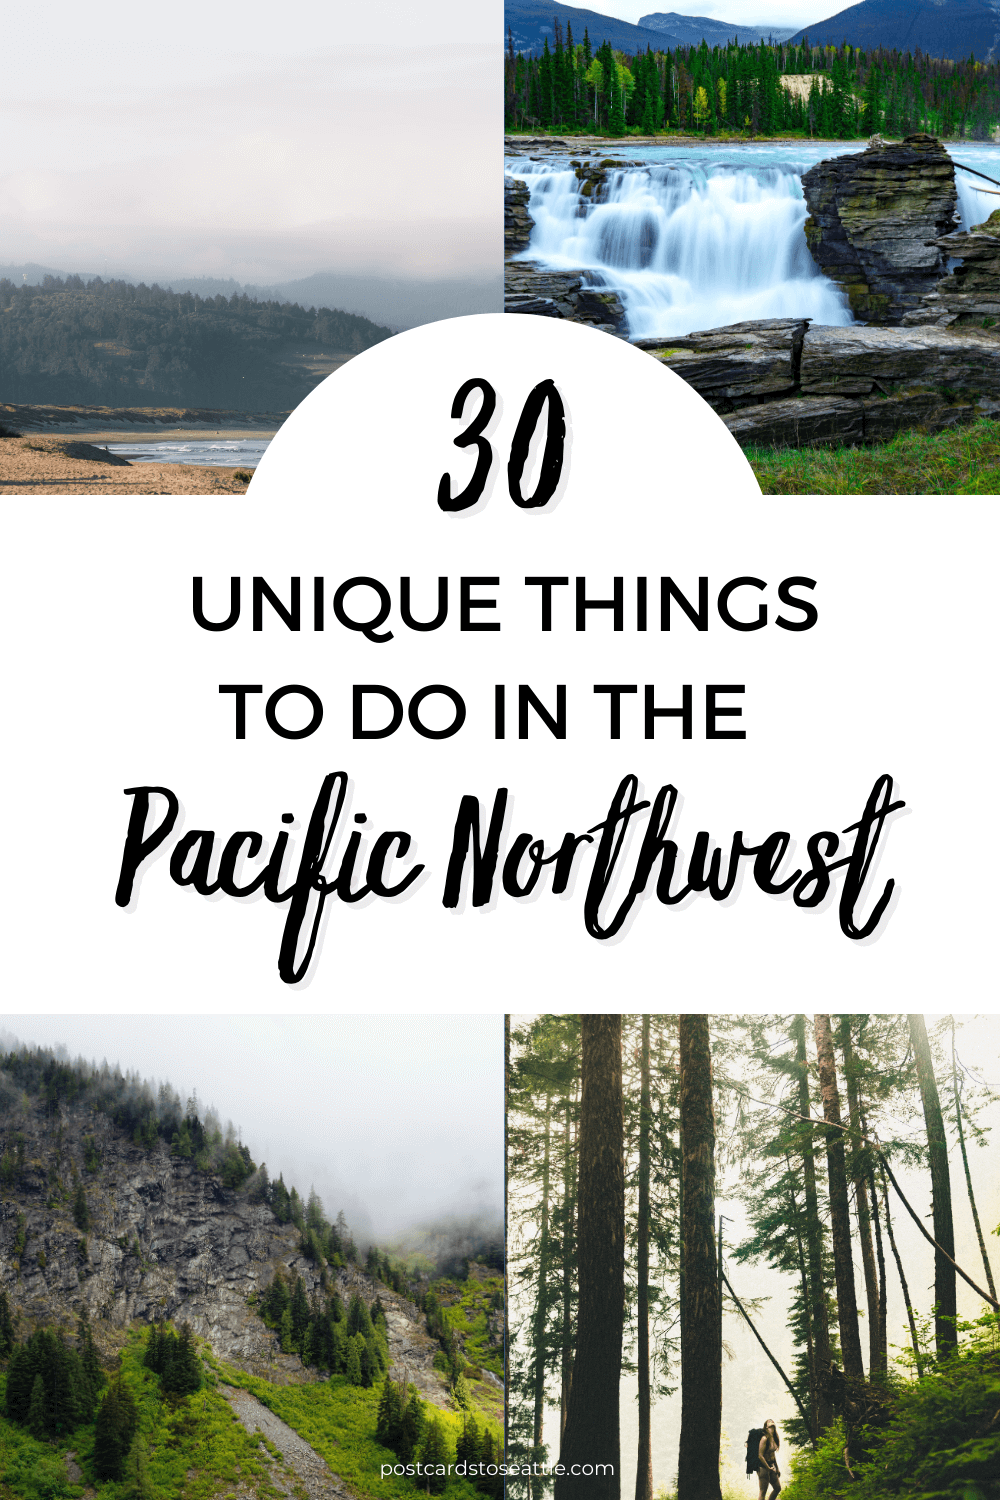 30 Unique Things To Do in the Pacific Northwest in 2021